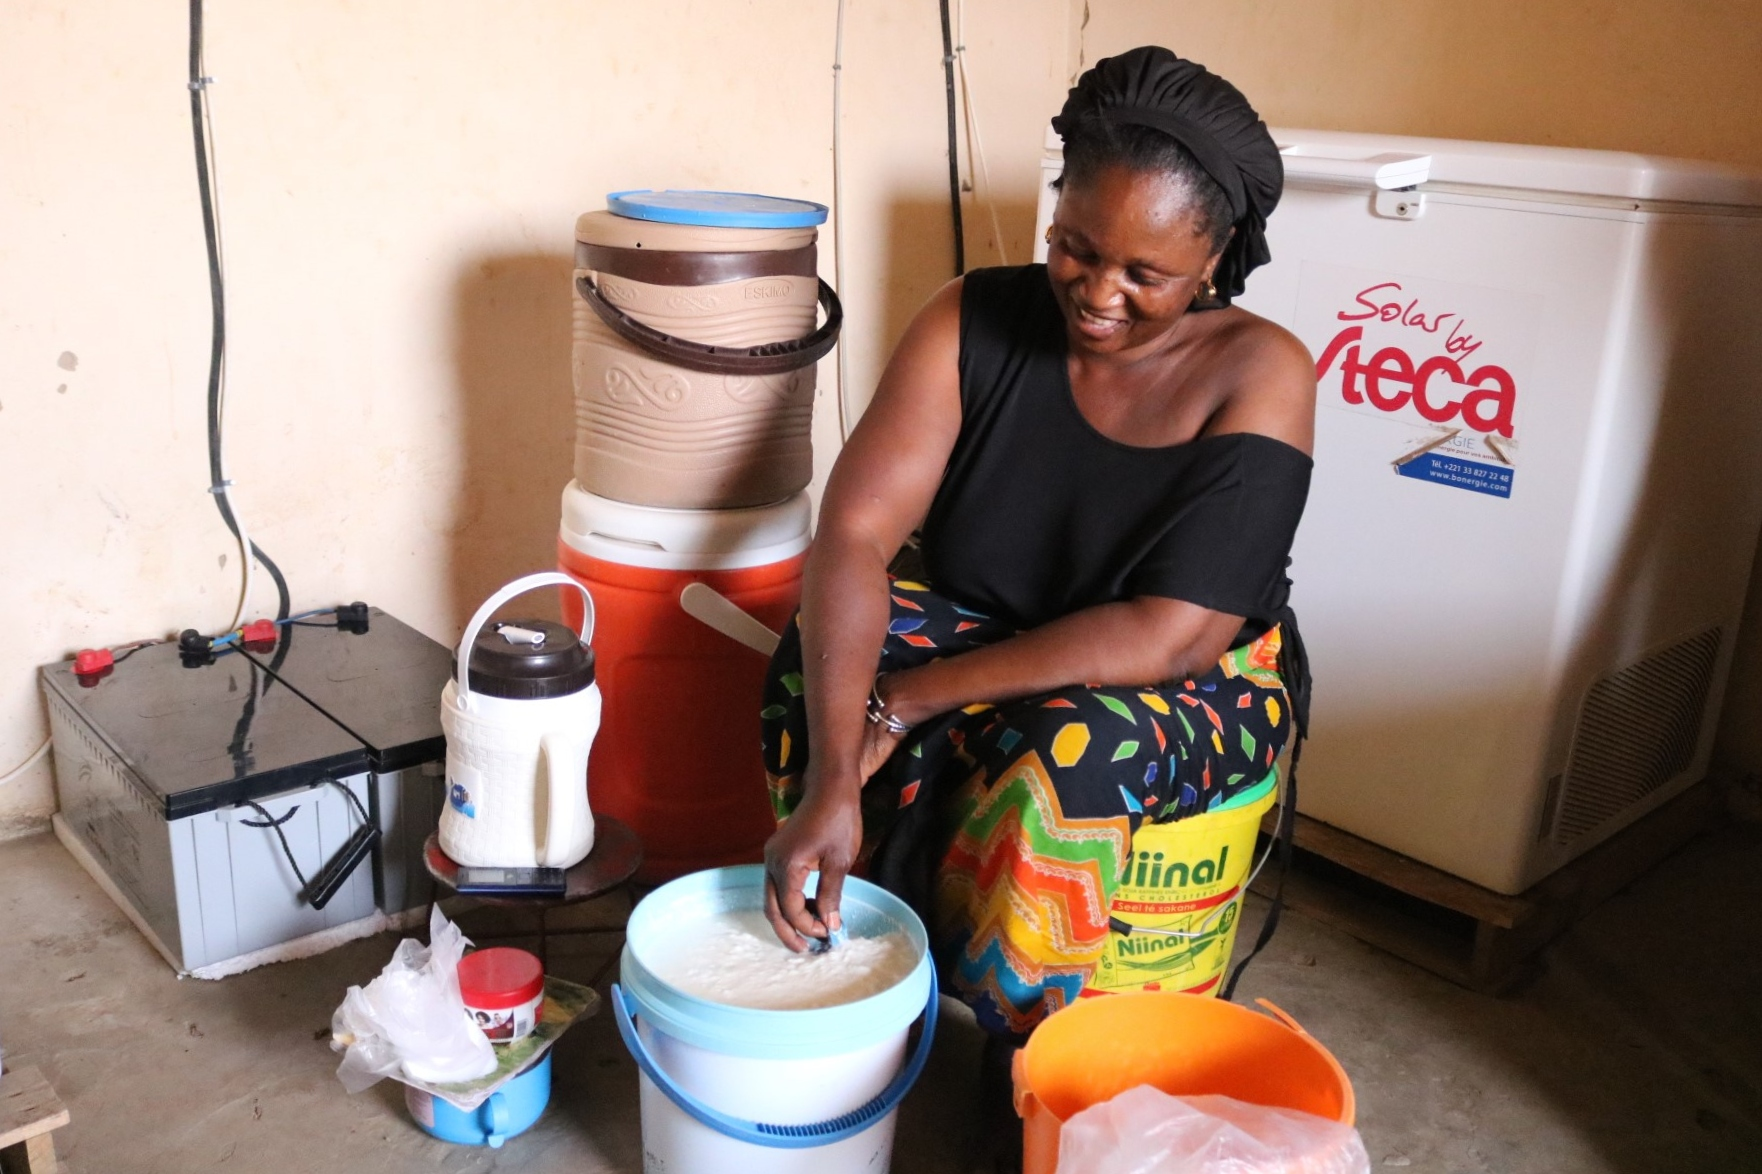 ENERGIA's Covid-19 solidarity fund helps Awa realise her dreams of expansion